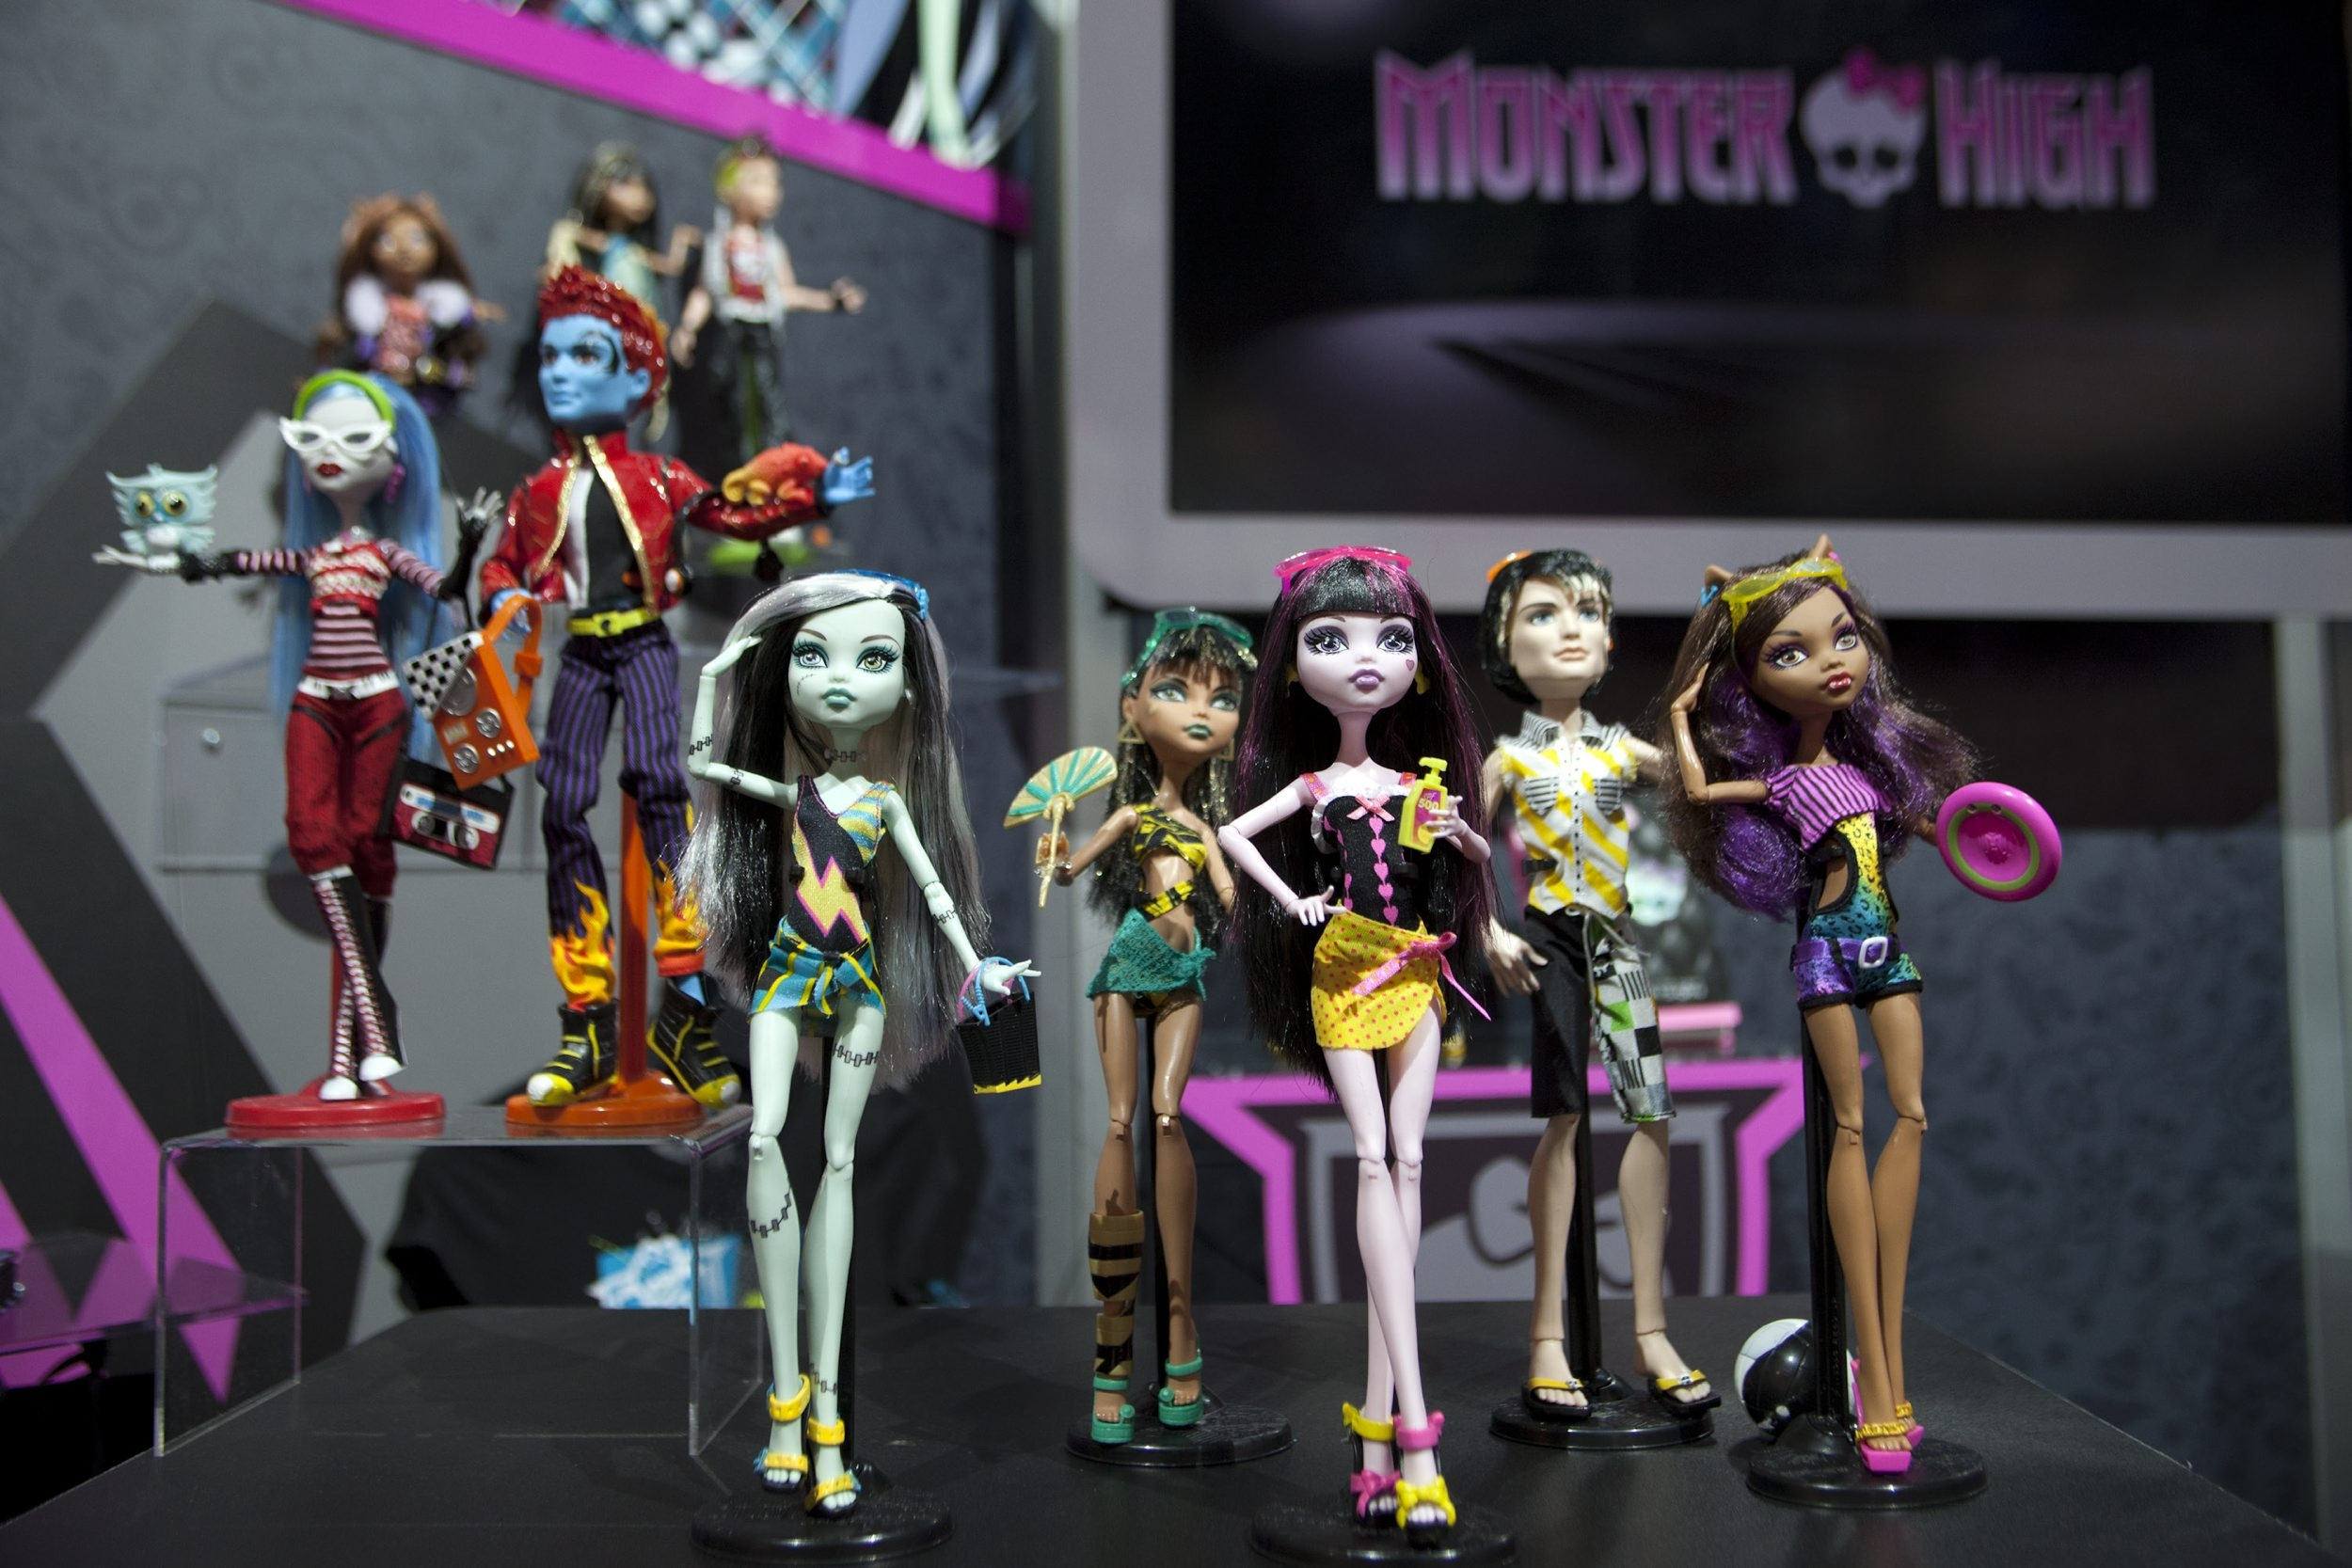 Mattel's Monster High doll line, based on the offspring of famous monsters, has grown to the No. 2 doll category in three years of existence. Monster High sales drove Mattel's girls band category up 56 percent worldwide.